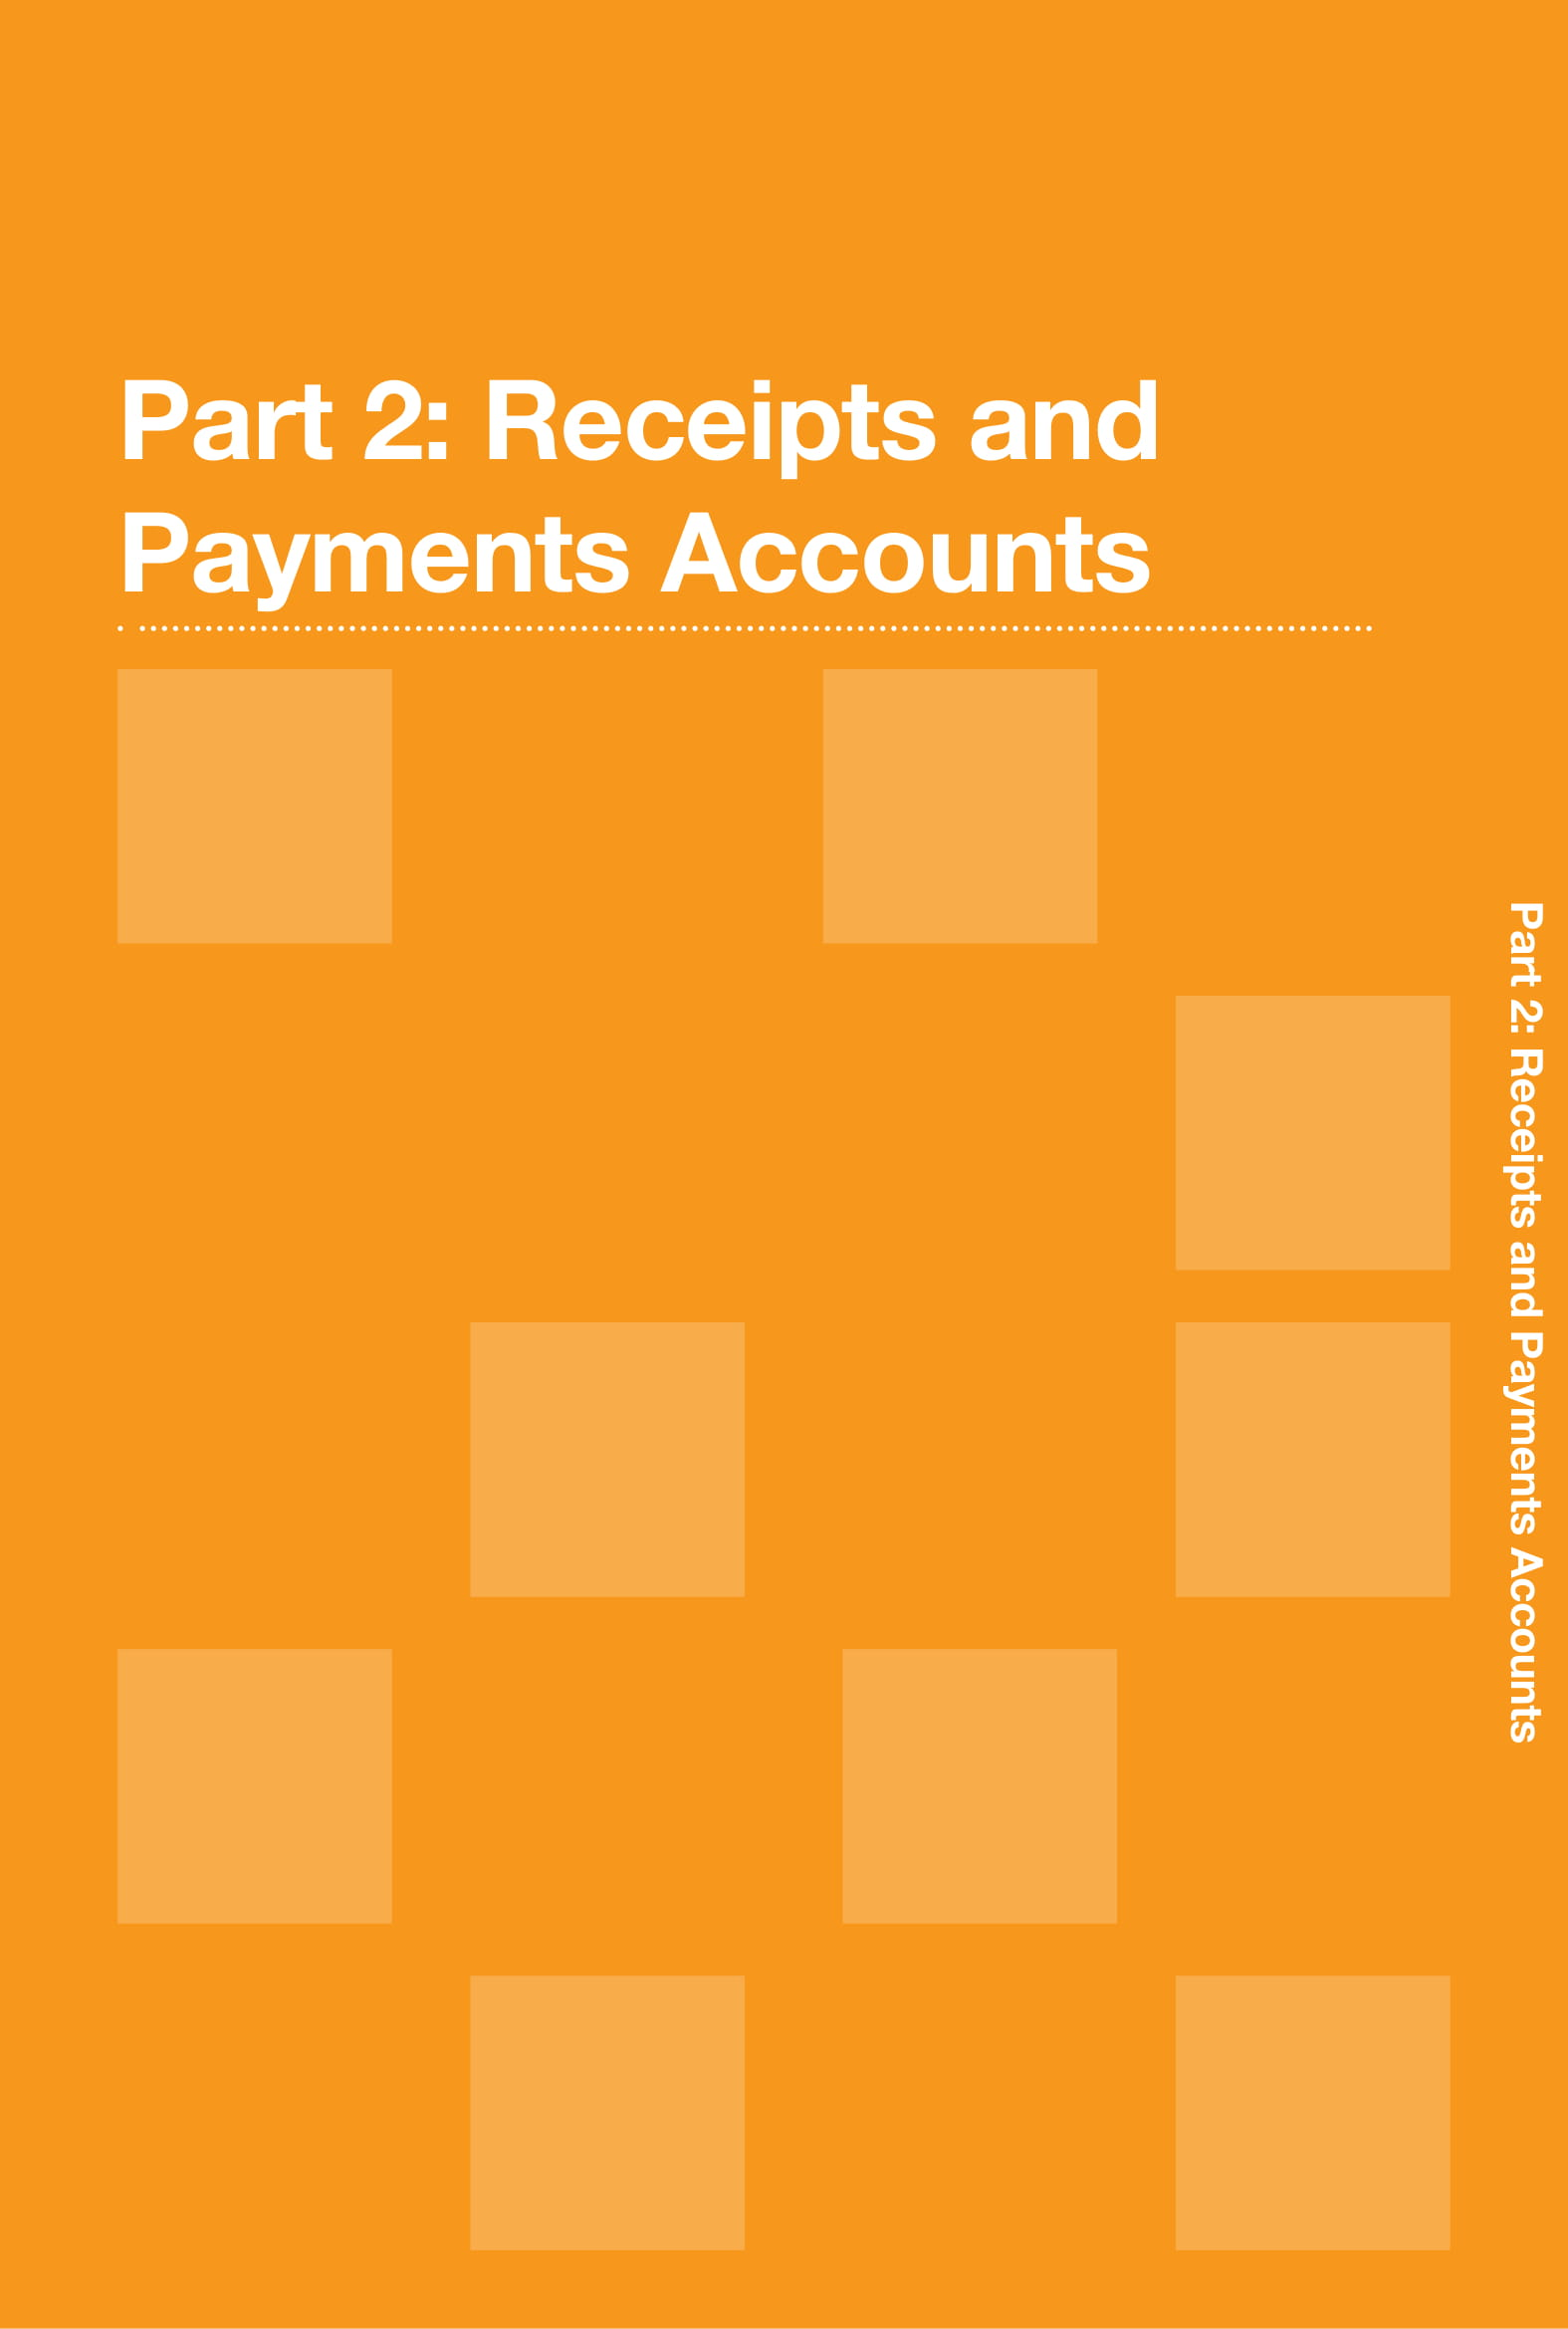 scottish receipts payments accounts